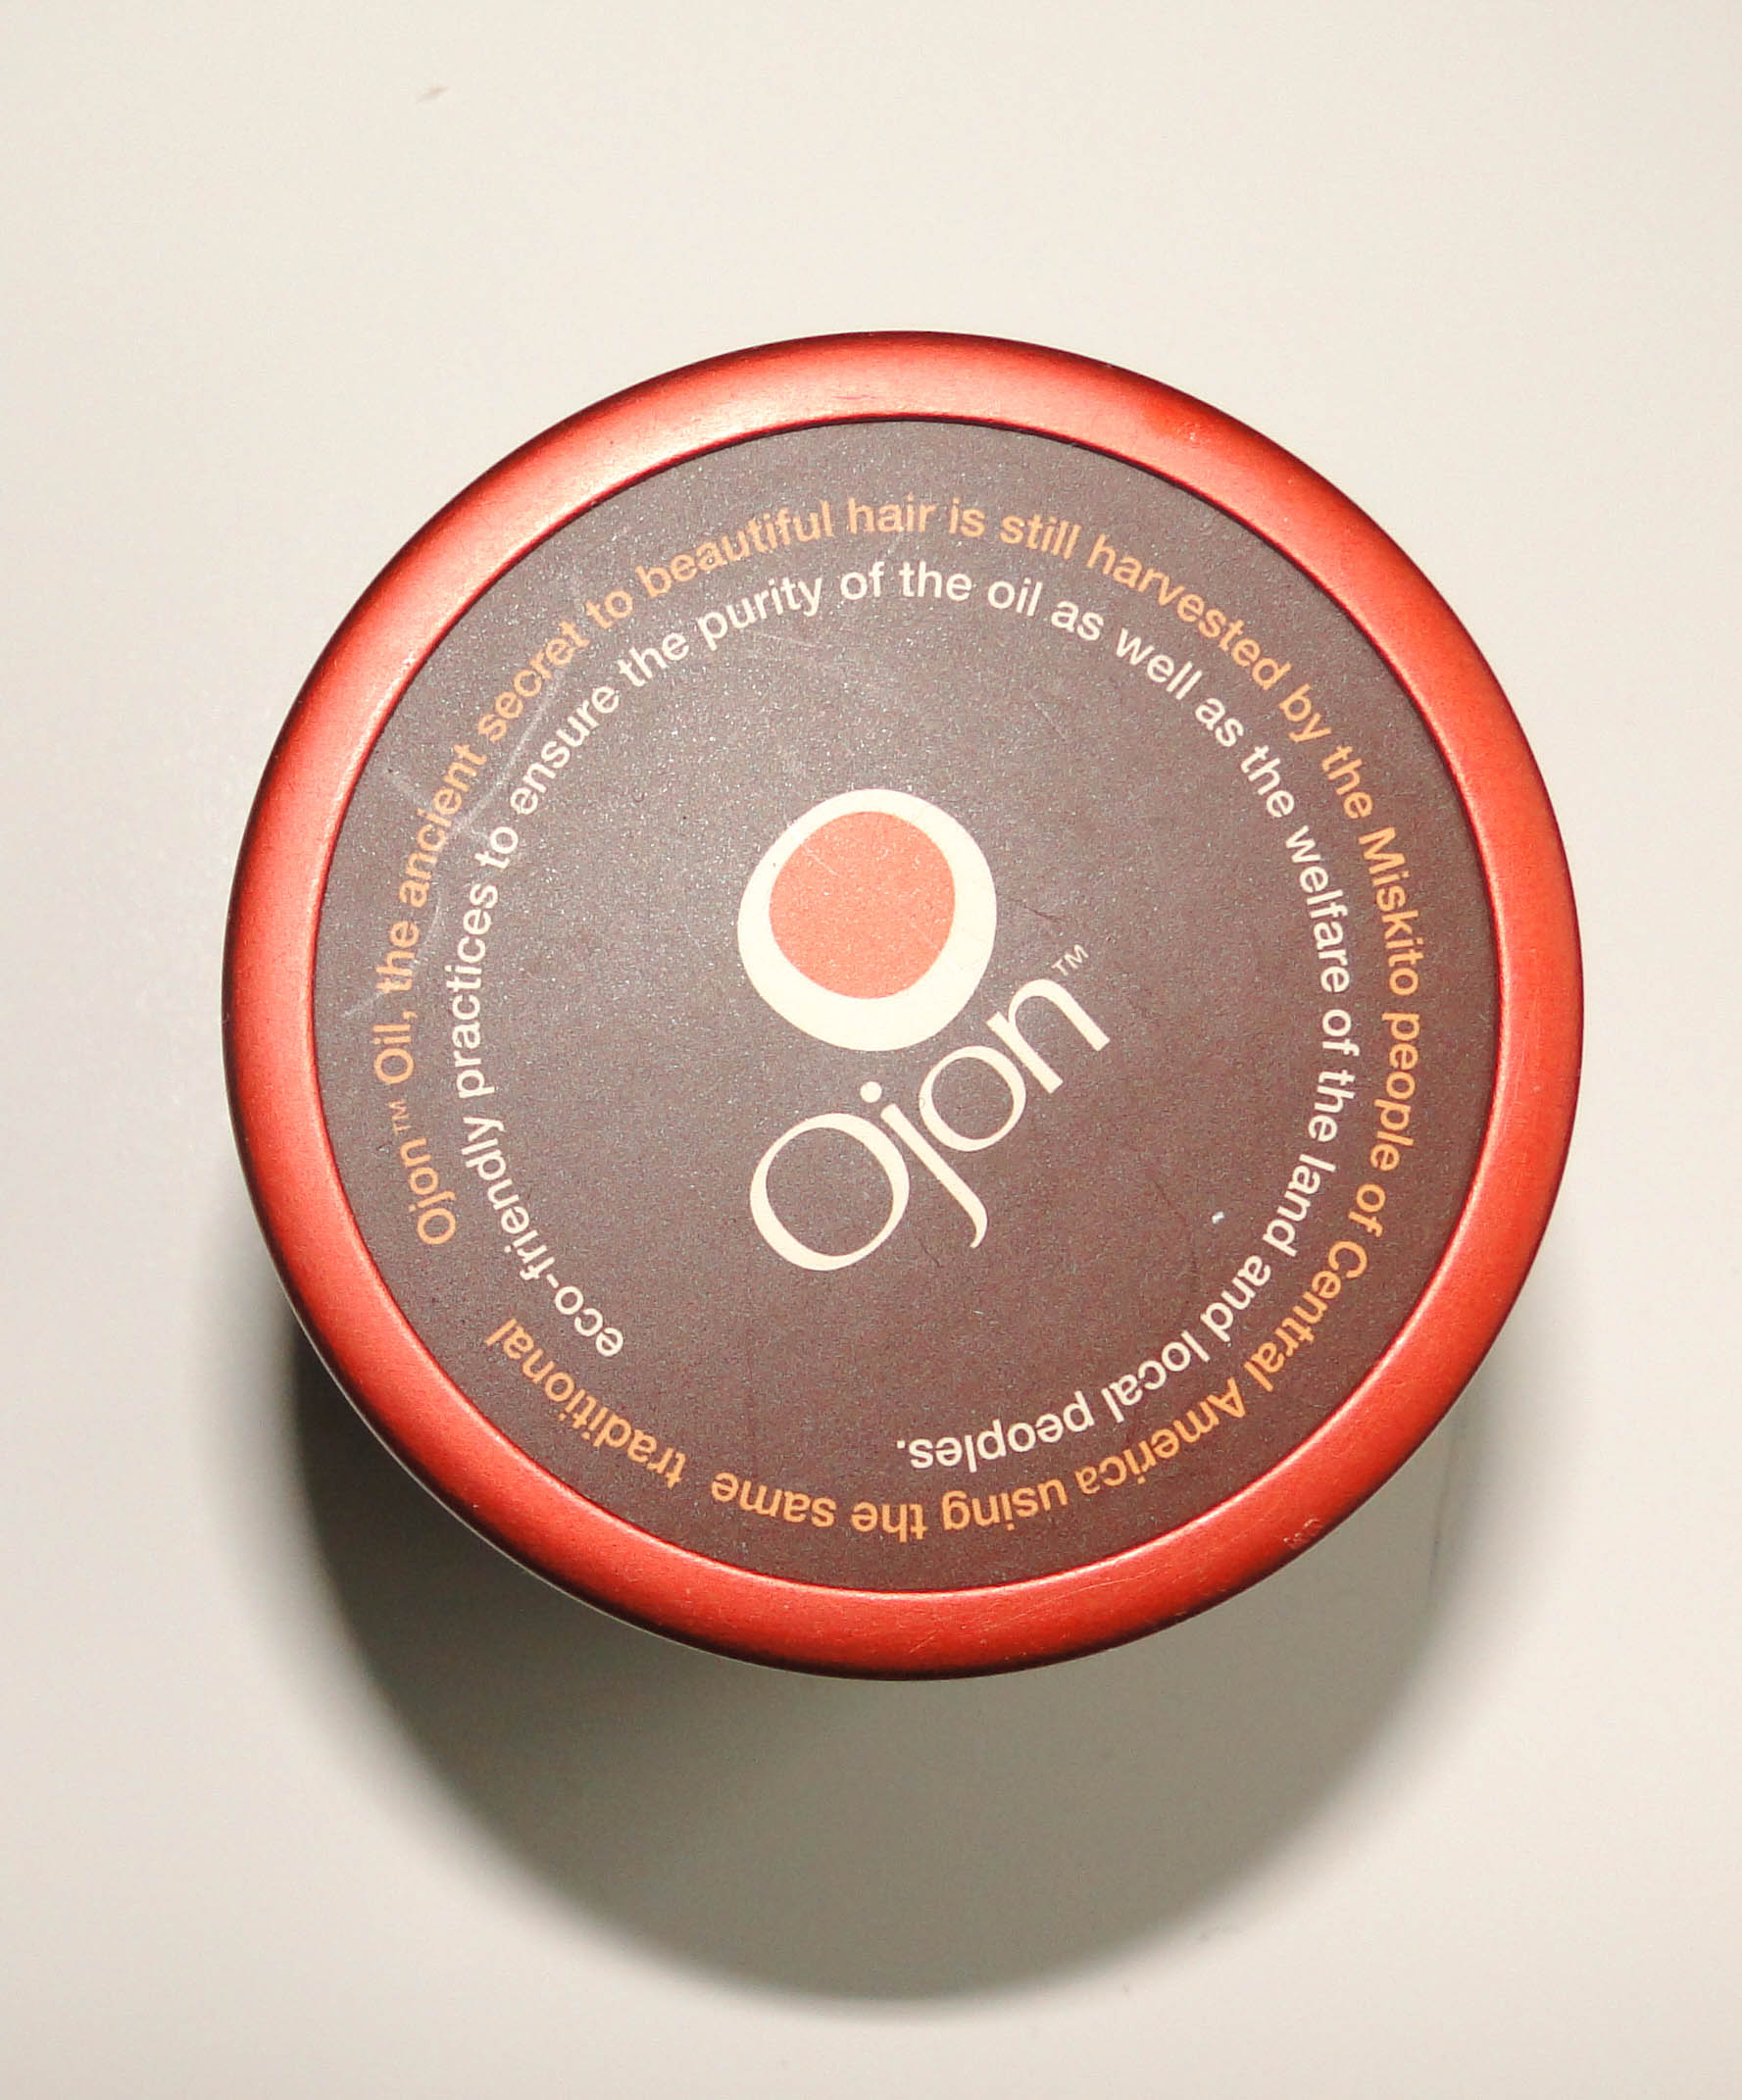 Ojon Damage Reverse Hair Treatment